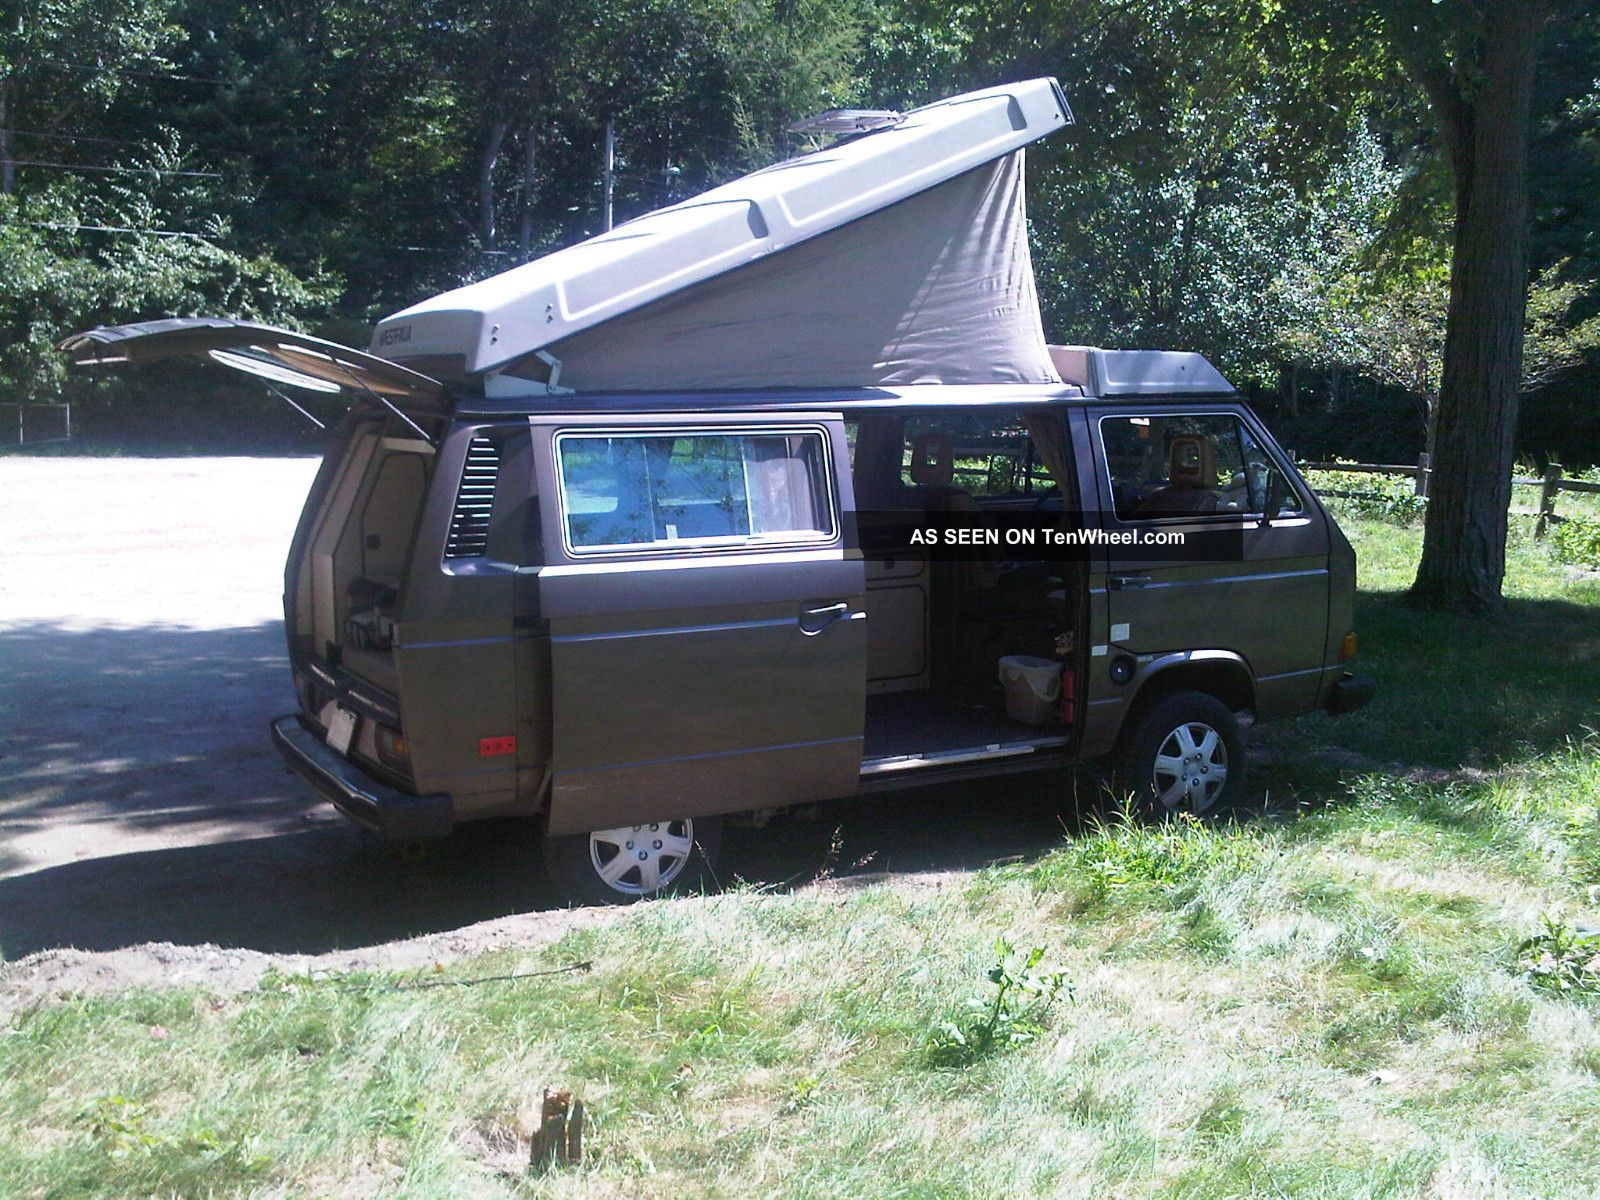 Swish Sale By Owner Class B Campers Ohio Vw Volkswagen Camper Westfalia Campmobile Westy Class B Rv Vanagon Gl Vw Volkswagen Camper Westfalia Campmobile Westy Class B Rv Class B Campers curbed Class B Camper